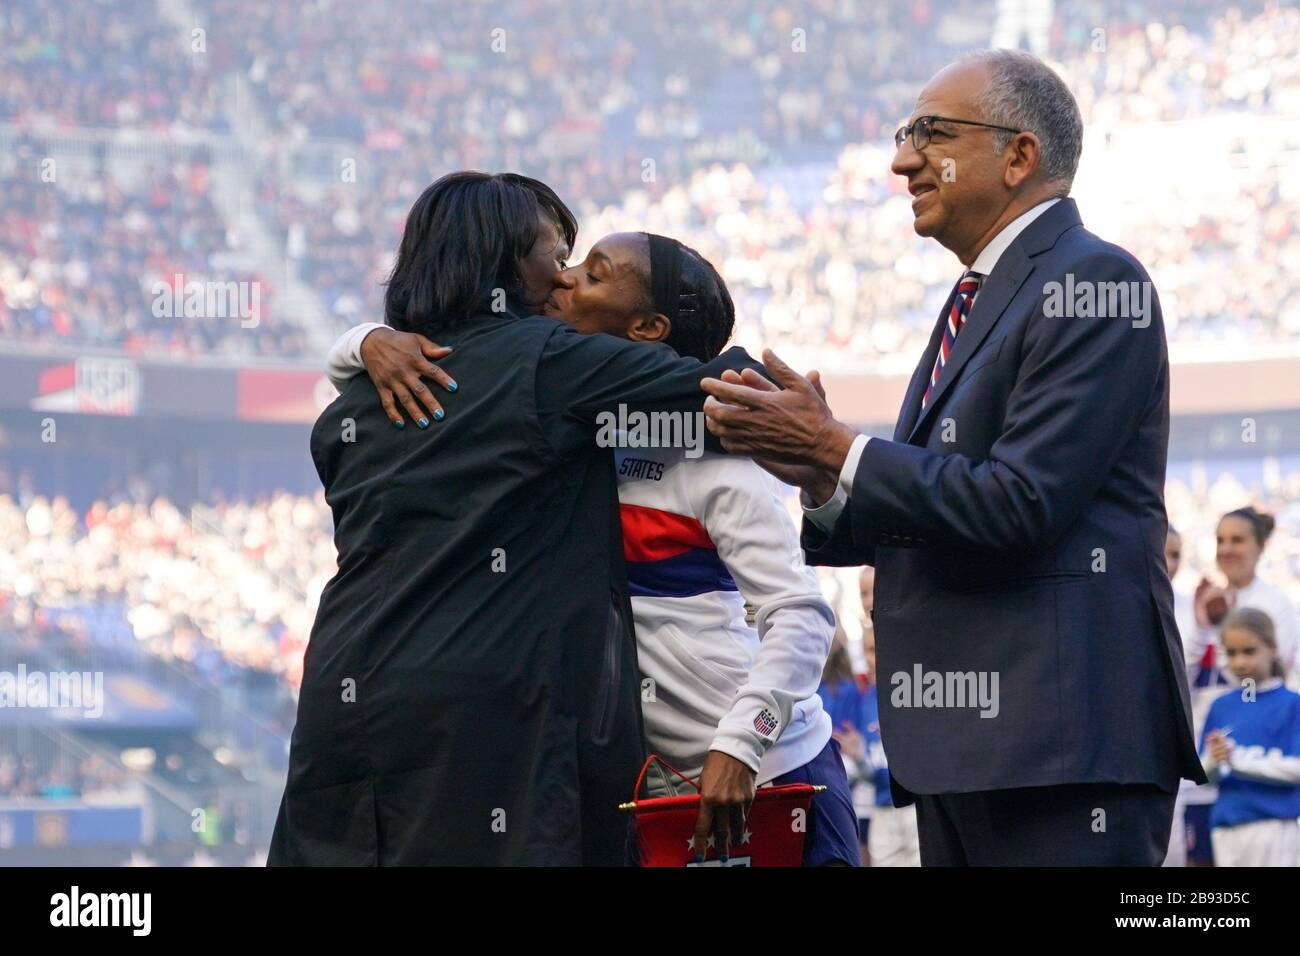 HARRISON. USA. MAR 08:  Family members of Crystal Dunn of the USA celebrate her 100th cap ceremony during the 2020 SheBelieves Cup Women's International friendly football match between USA Women vs Spain Women at Red Bull Arena in Harrison, NJ, USA. ***No commericial use*** (Photo by Daniela Porcelli/SPP) Stock Photo